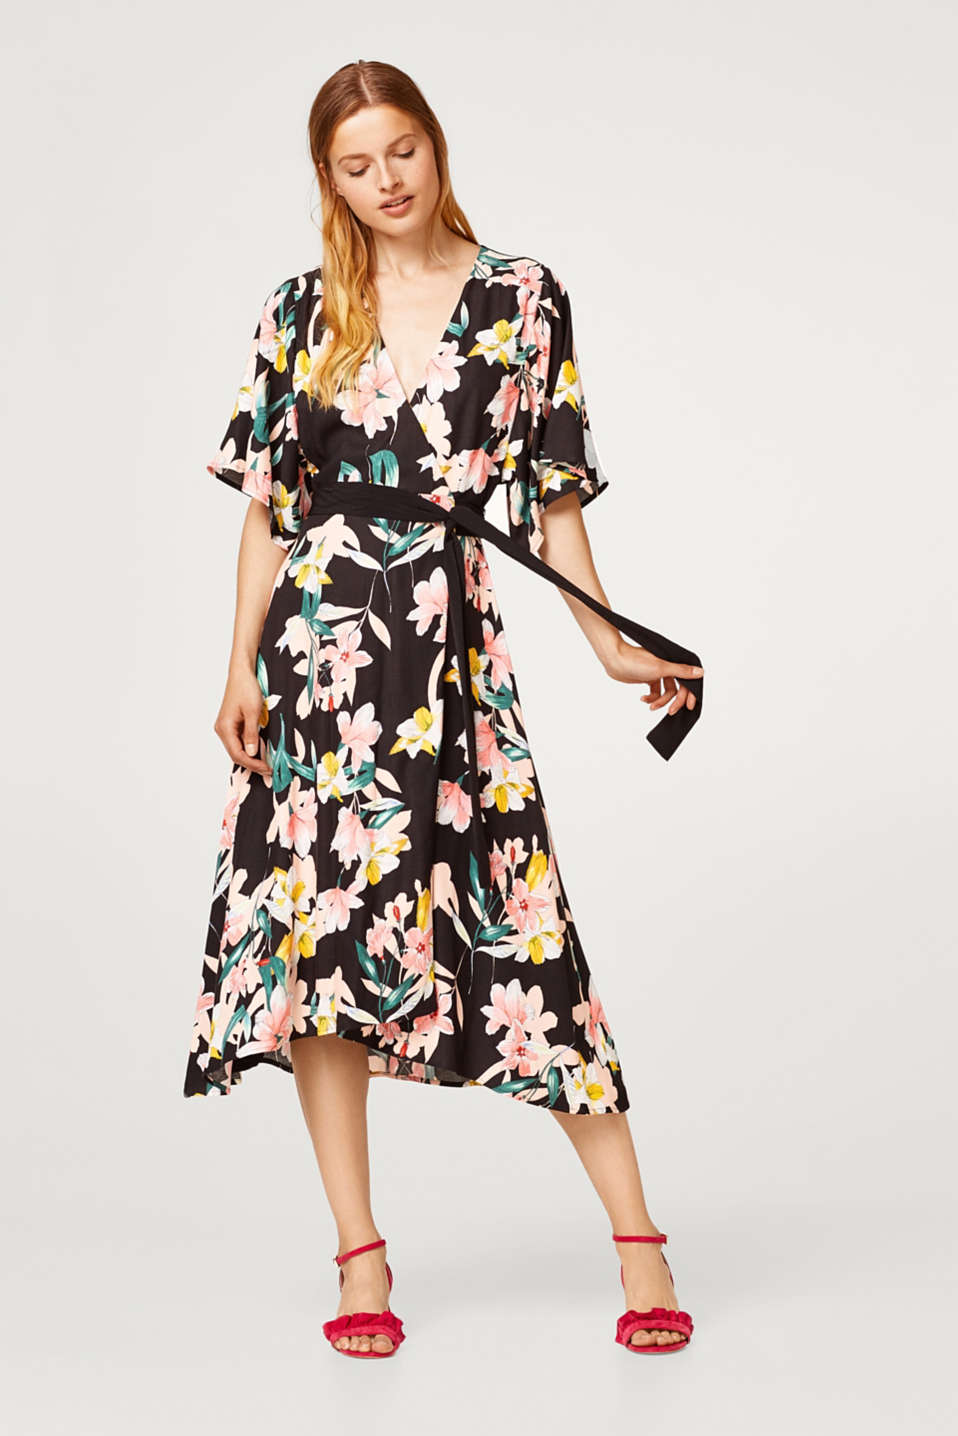 Wrap dress made of crêpe with a floral print and belt